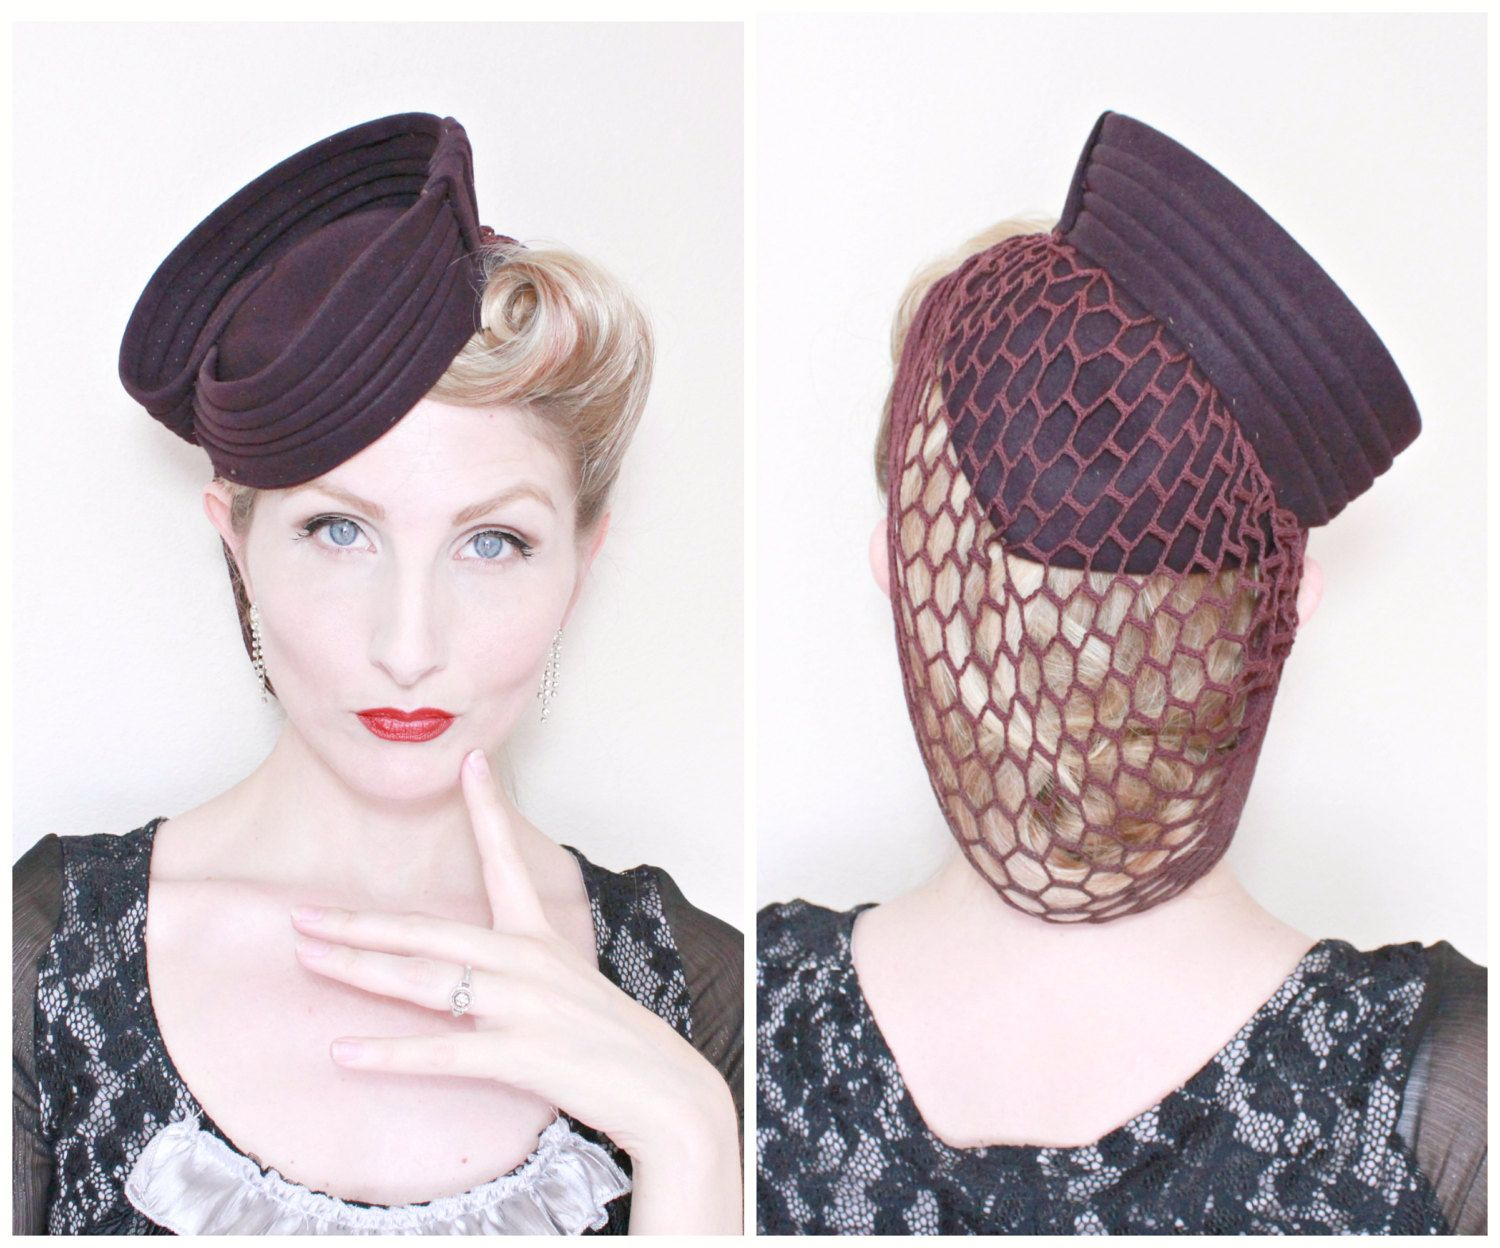 28127e14 1940s Hat / VINTAGE / 40s / Tilt Hat / Attached Snood / Deep Plum /  Sculpted / RARE by HighHatCouture on Etsy